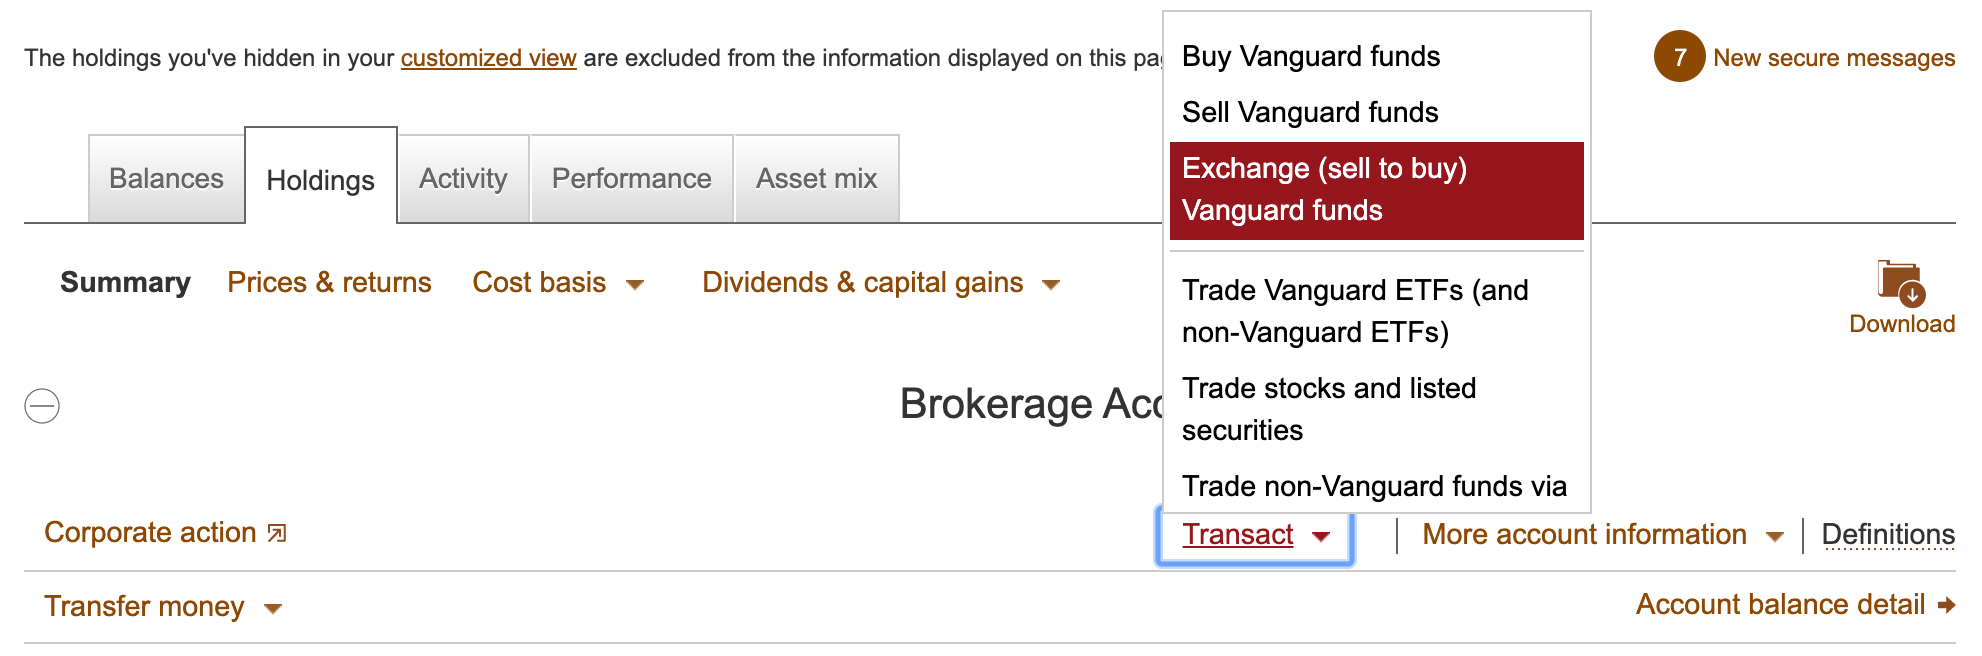 Vanguard transaction options